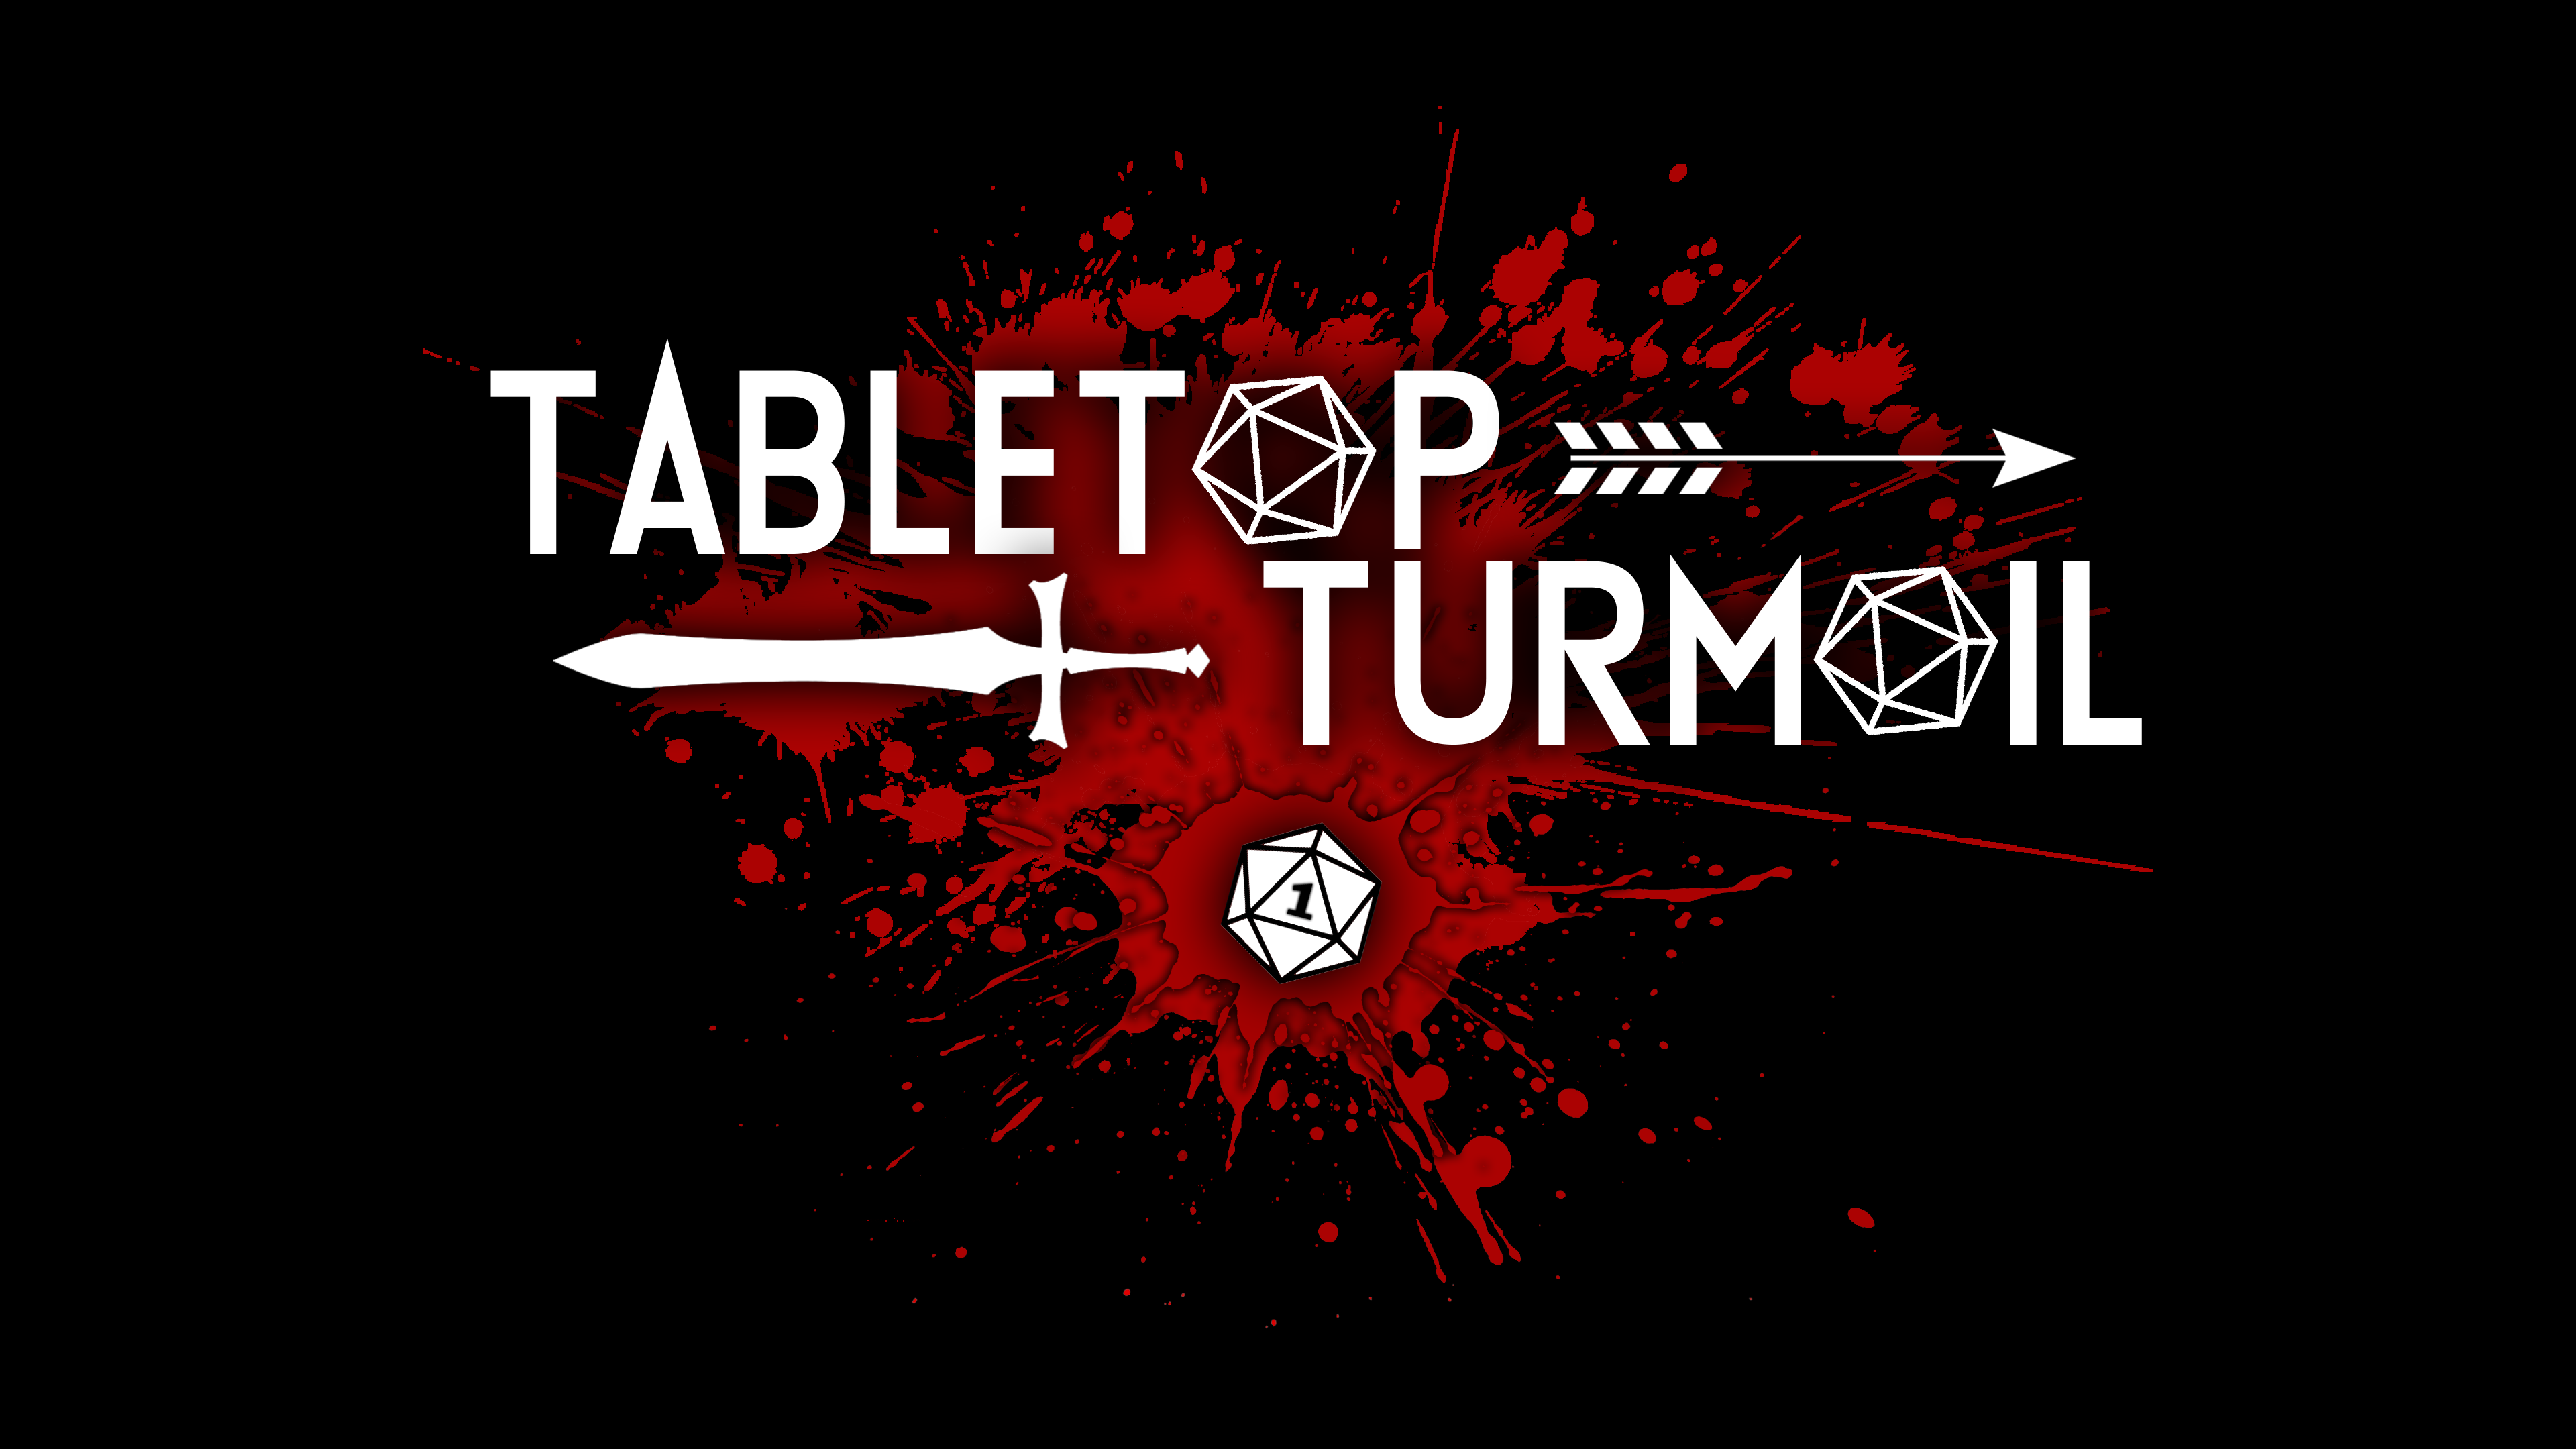 tabletopturmoilbloody